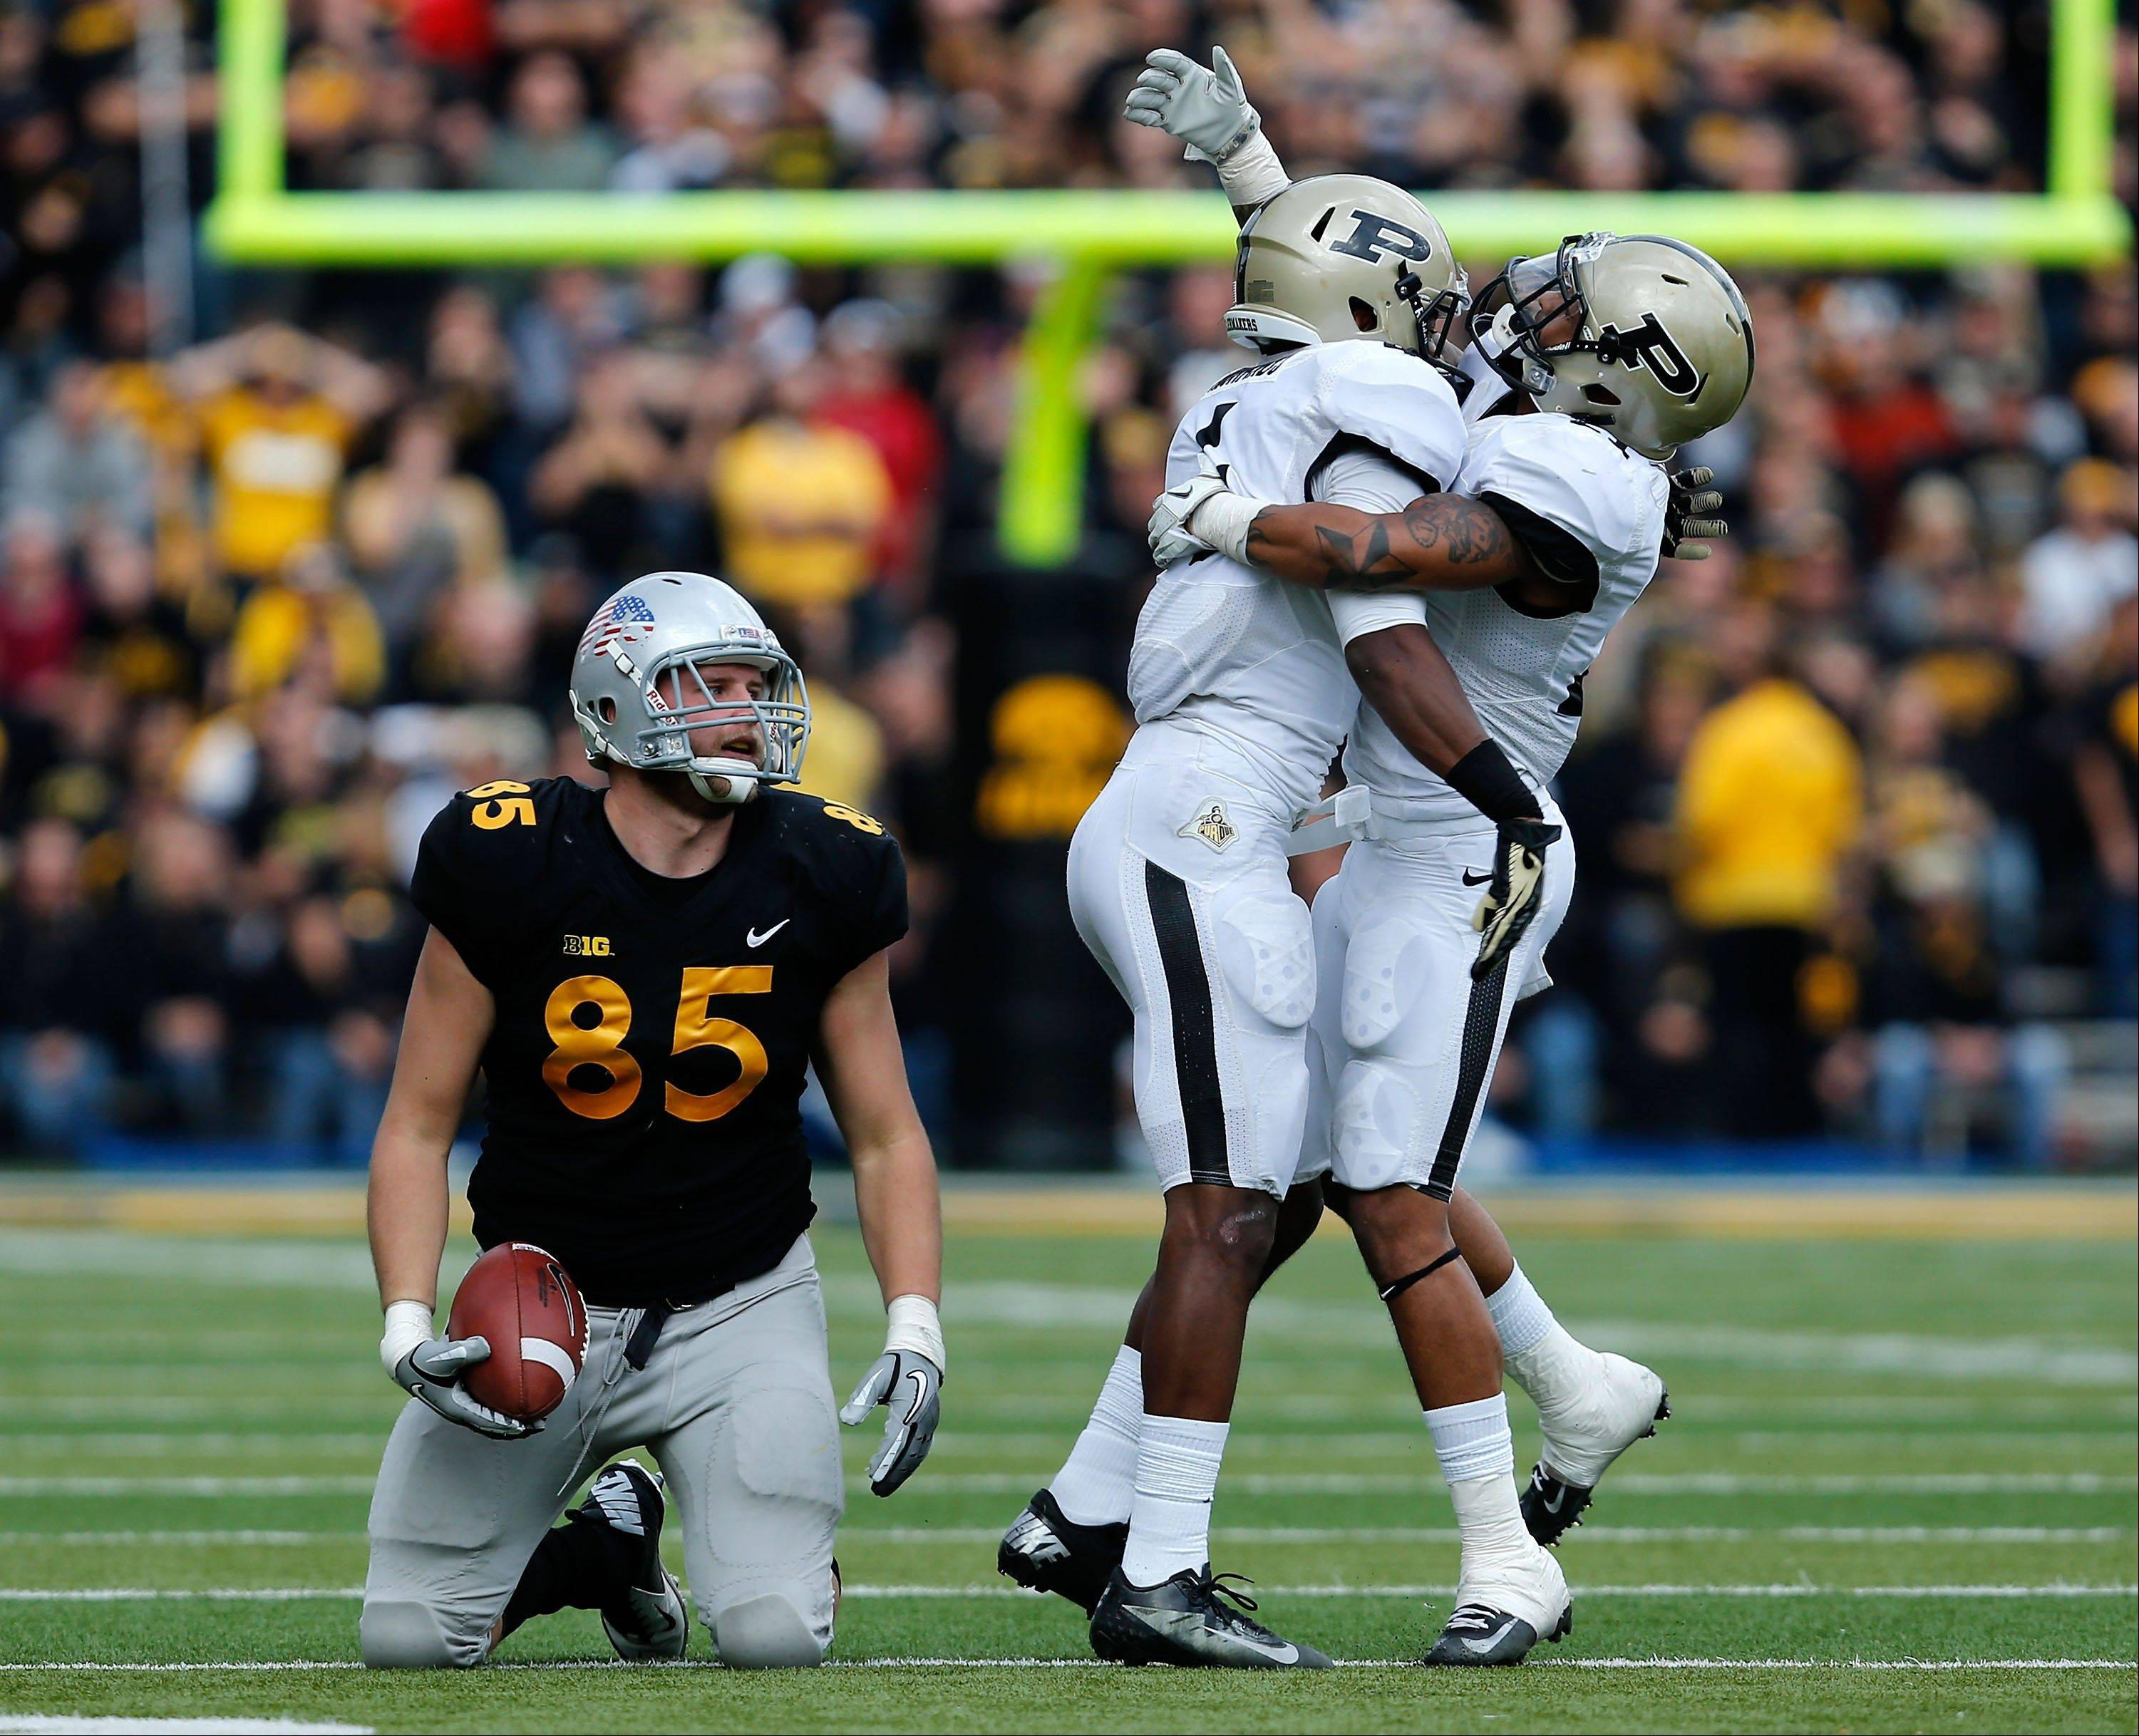 Purdue defensive back Taylor Richards (4) and cornerback Ricardo Allen (21) celebrate after stopping Iowa tight end Zach Derby short of a first down on fourth and three late in the fourth quarter Saturday in Iowa City, Iowa. Purdue won 27-24.